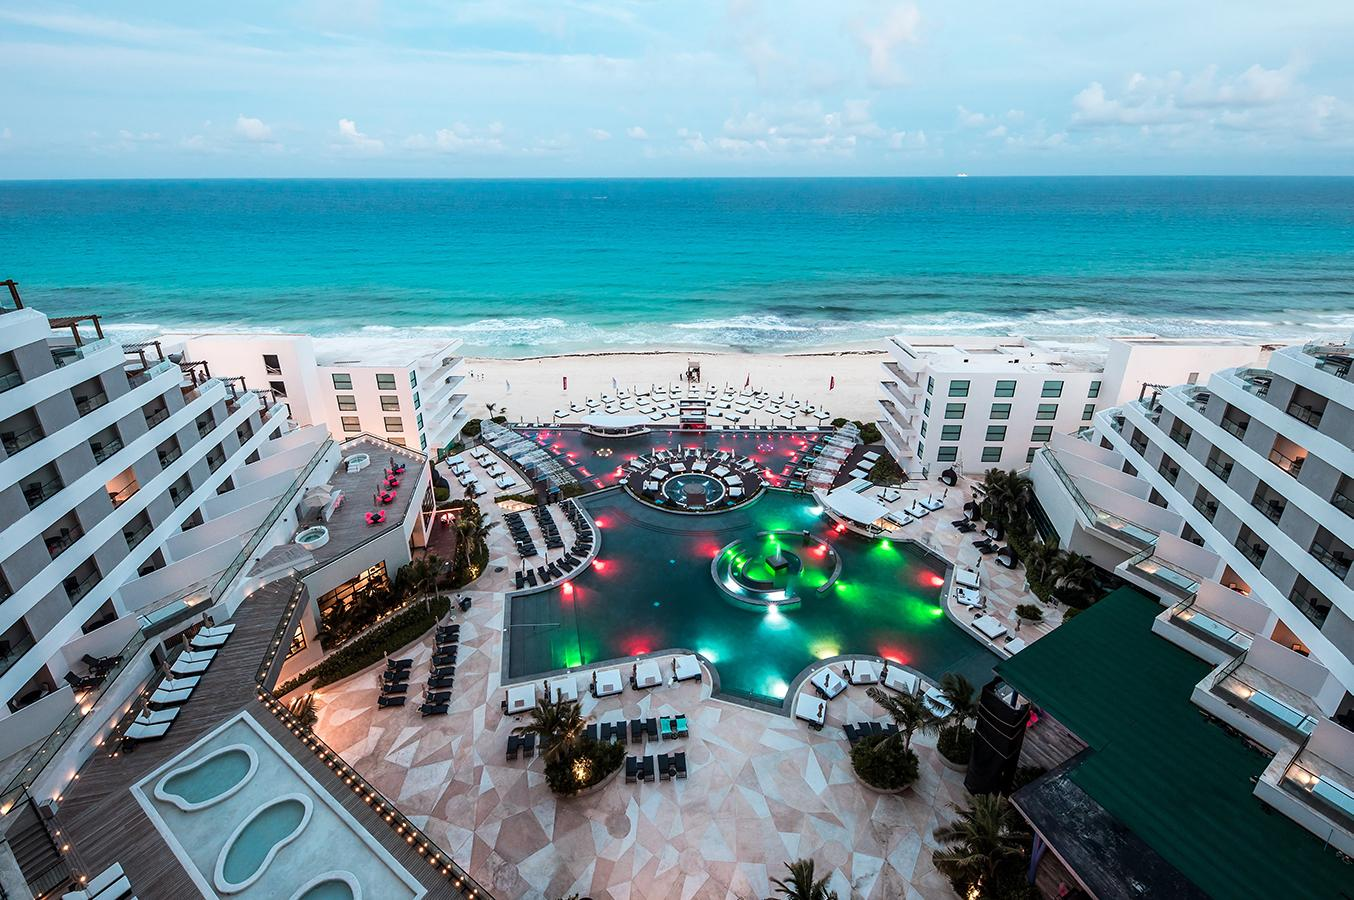 Aerial view of MelodyMaker Cancun's beachside pool amenities